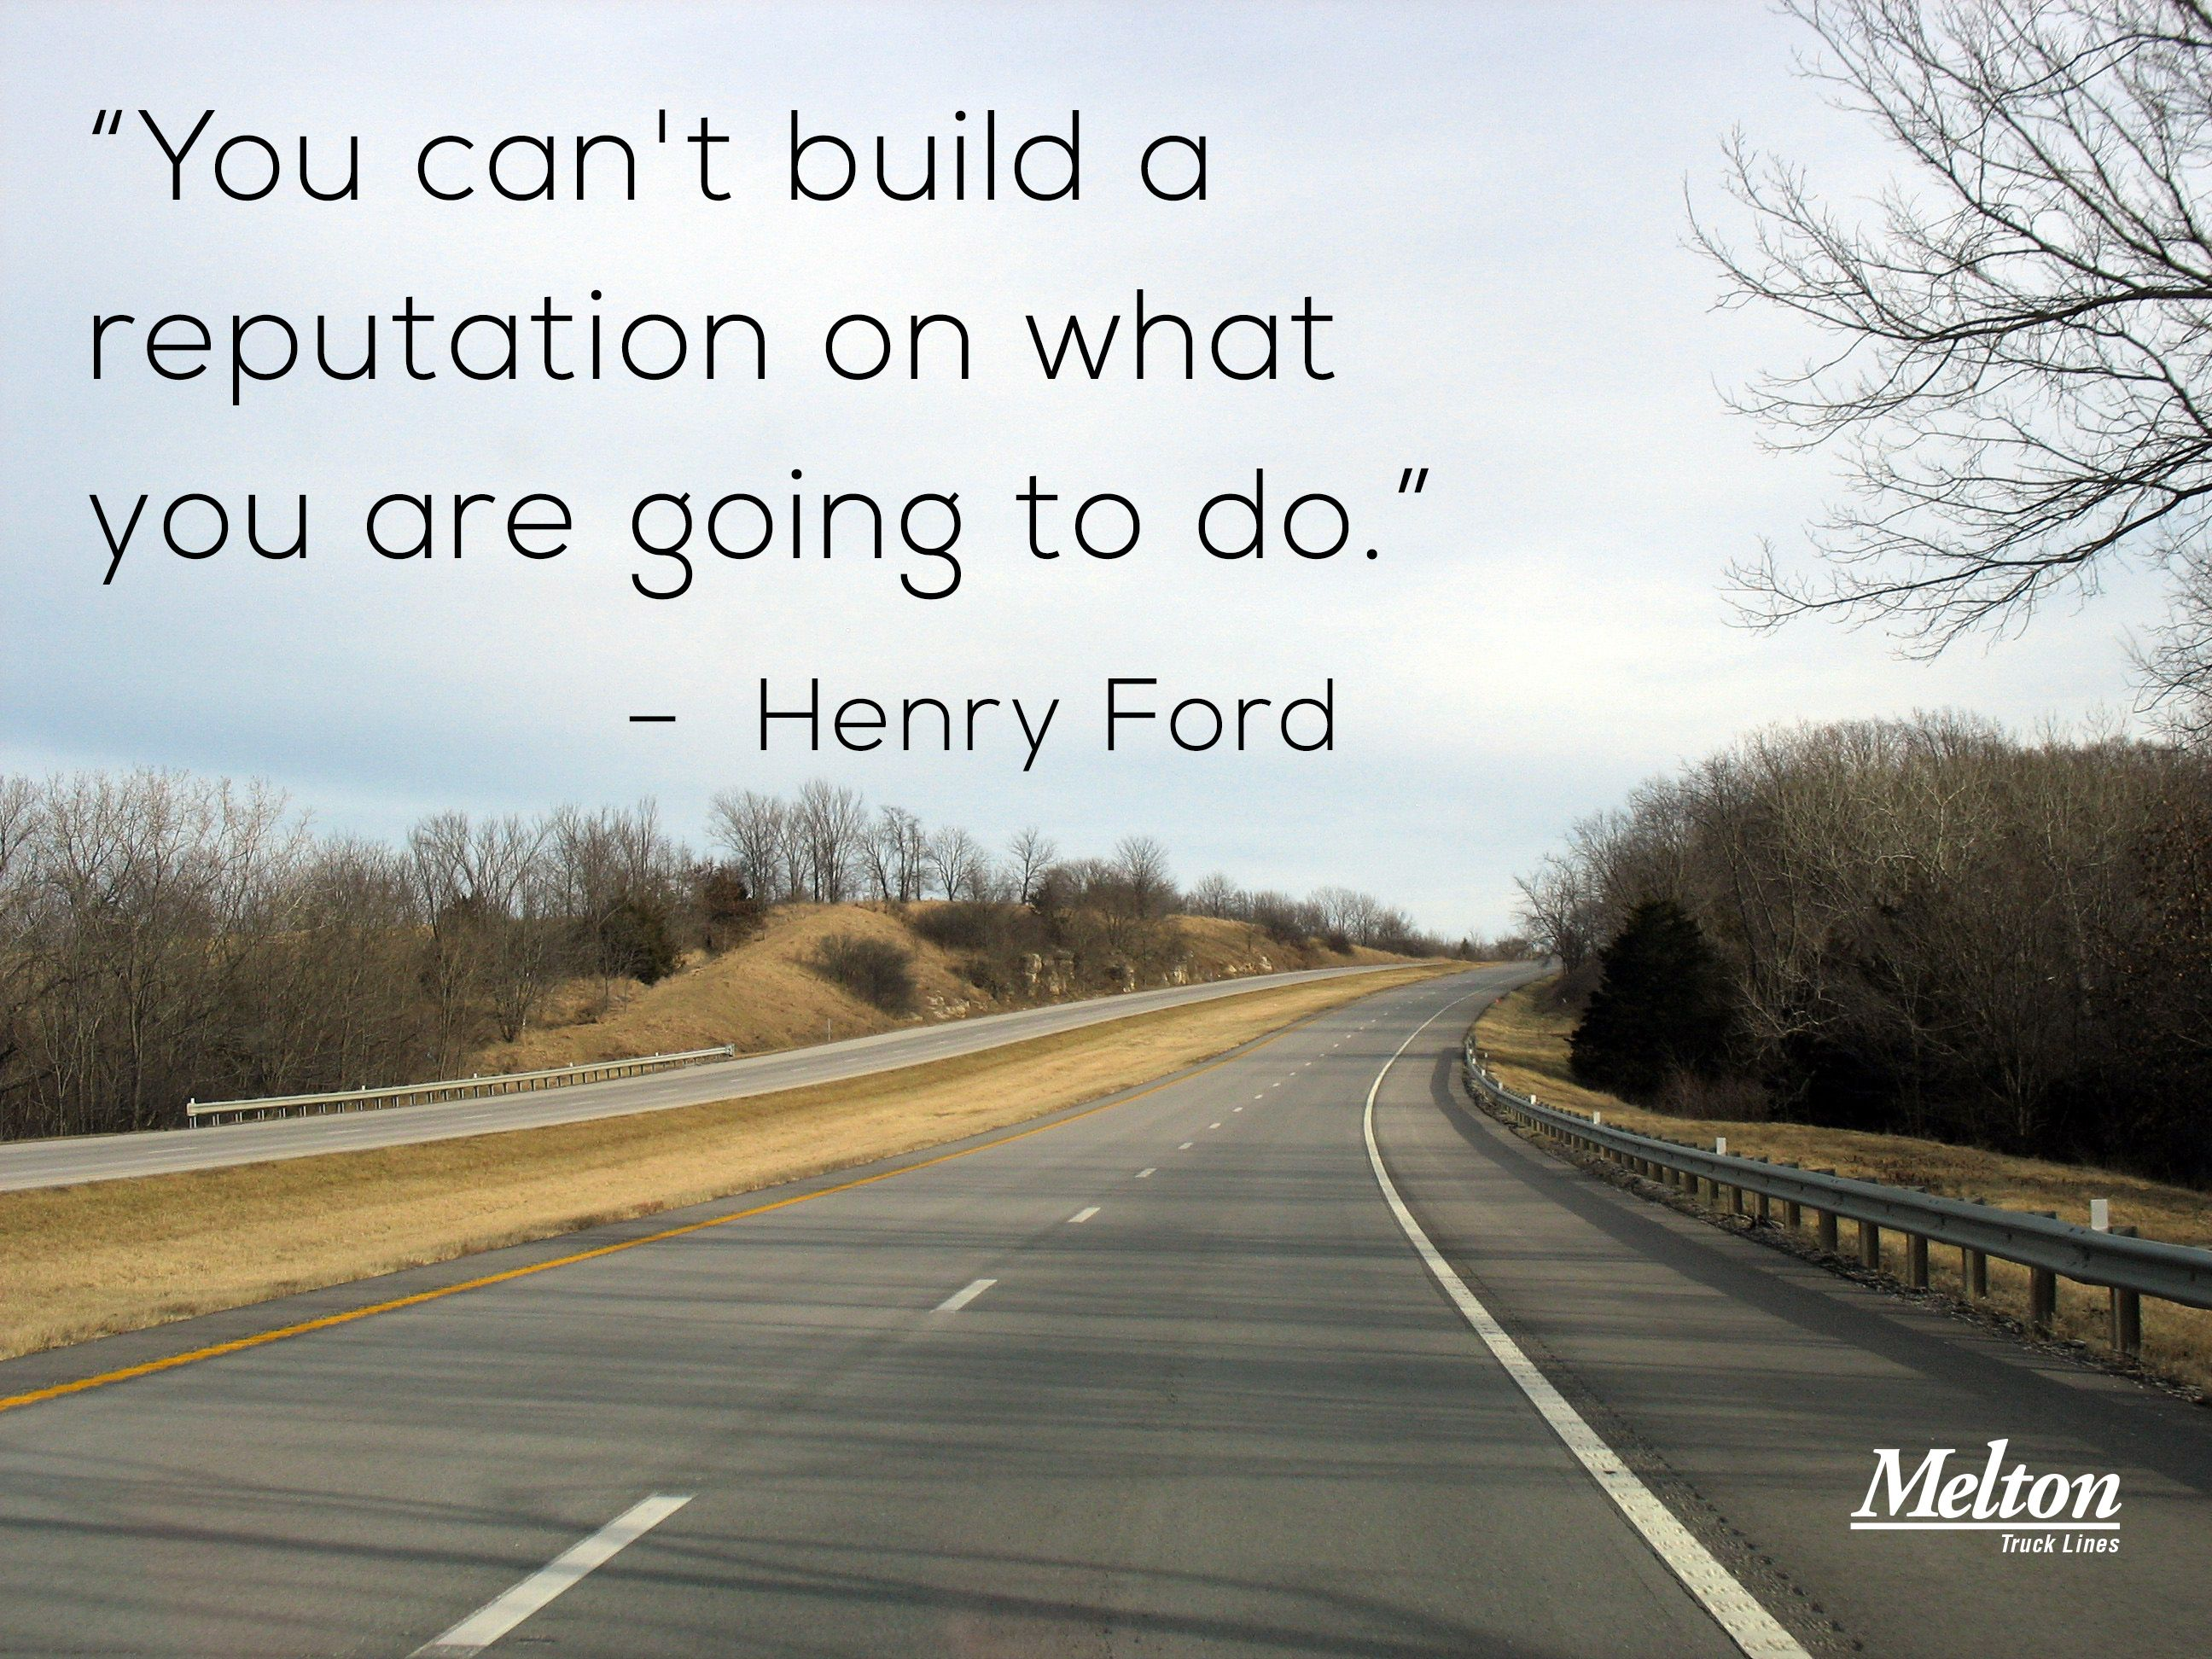 Motivational quotes to keep the wheels moving! Interested